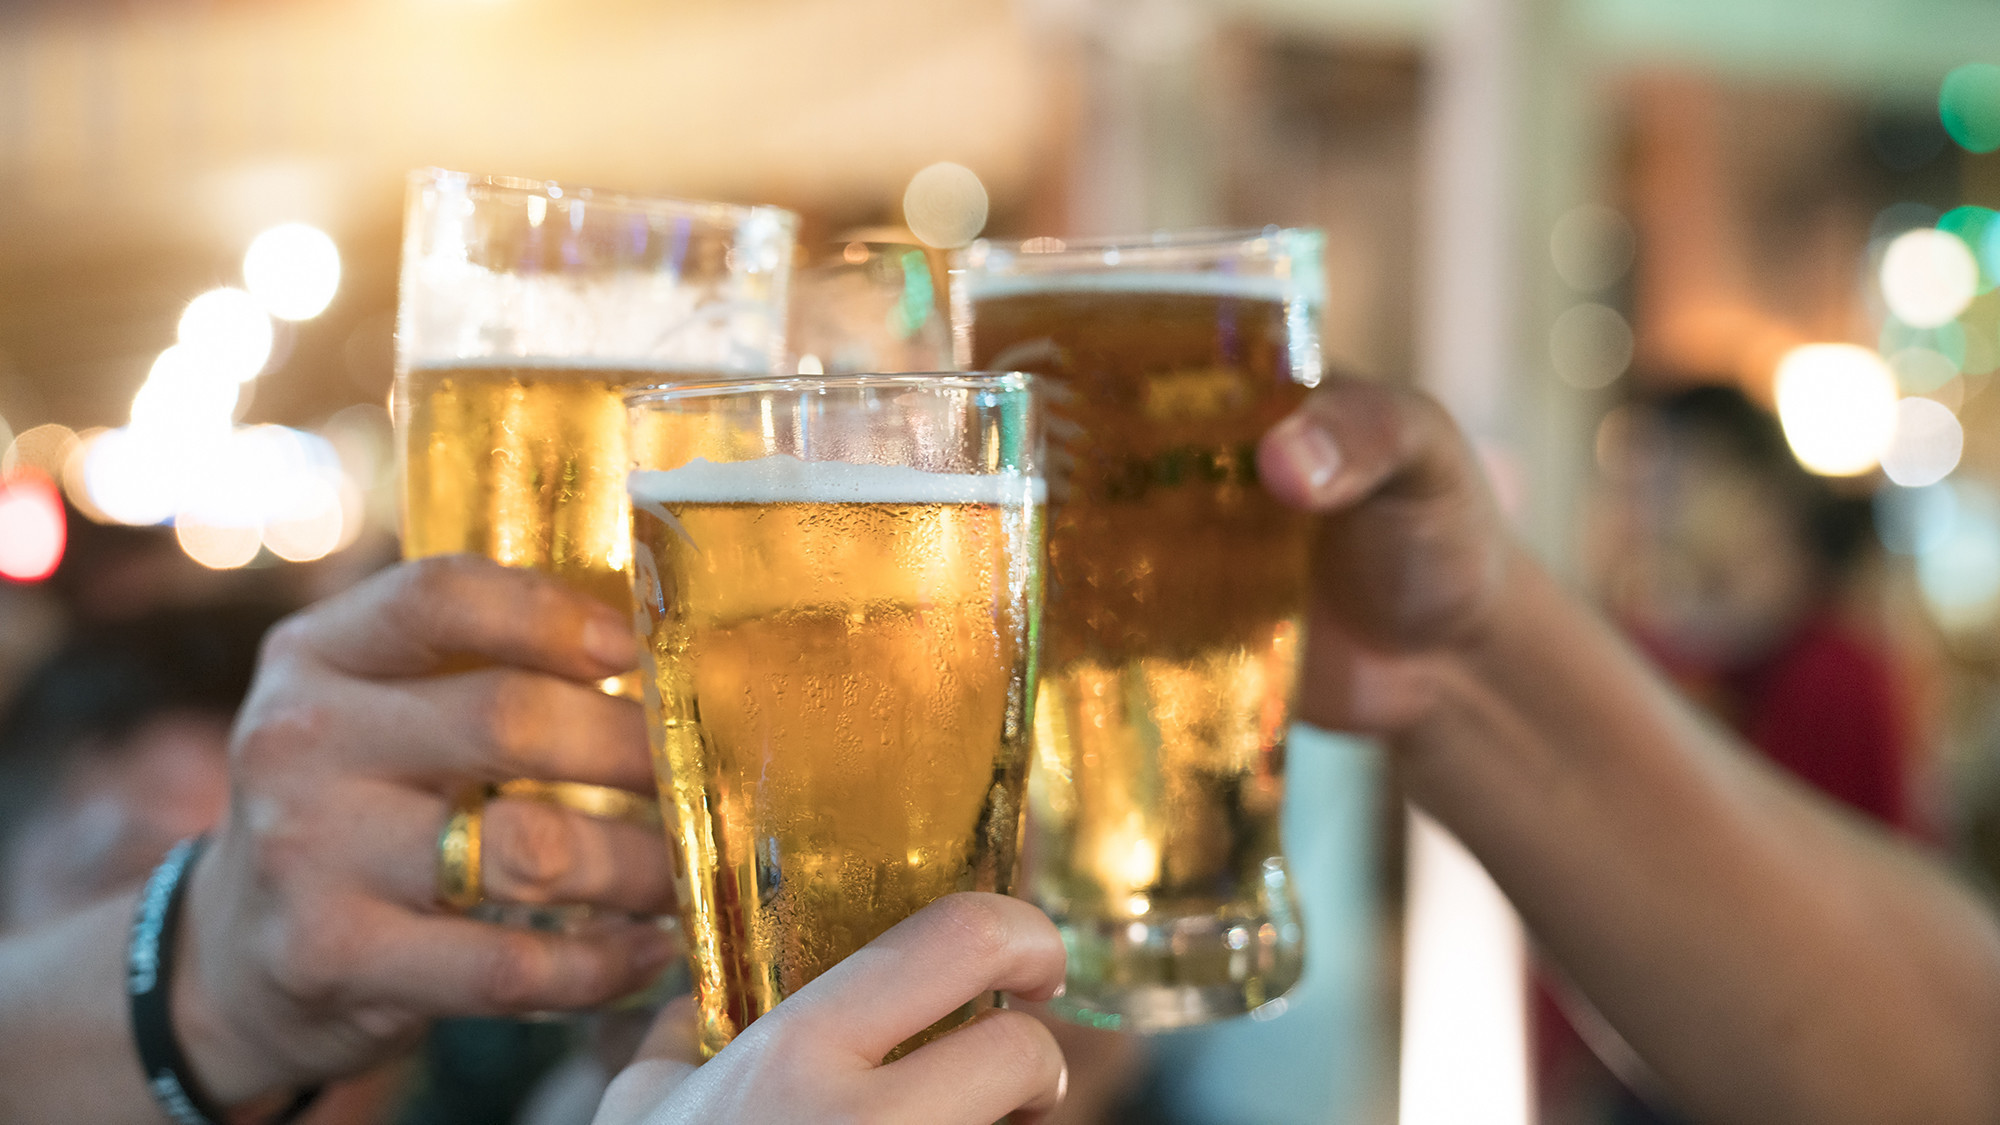 Effects of drinking too much alcohol - INSIDER